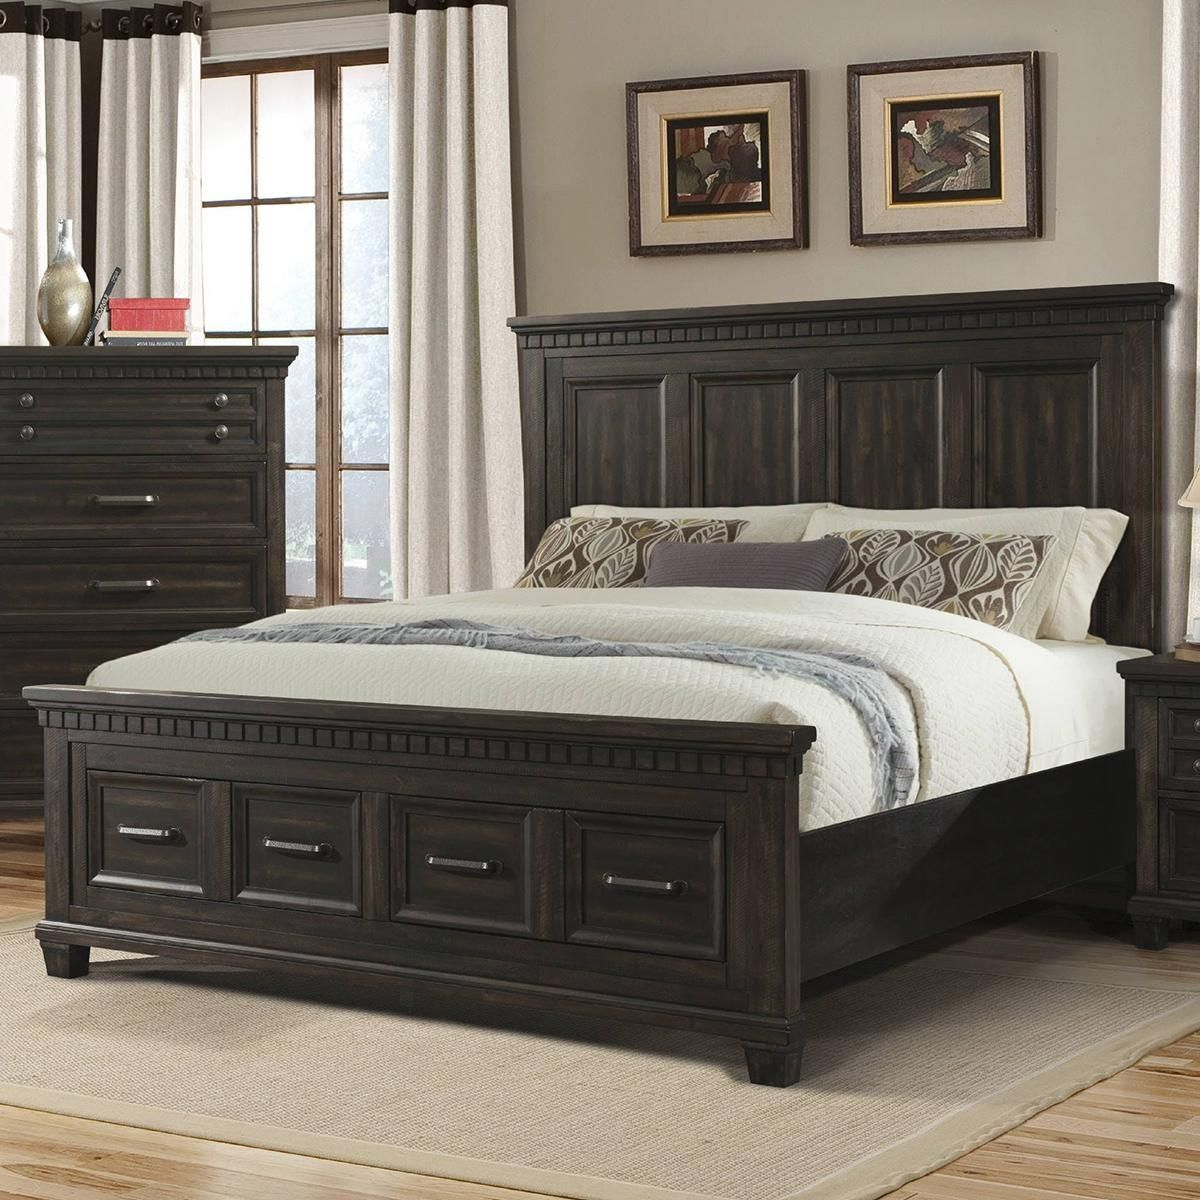 Product Main Image 0 King Bedroom Sets Bedroom Dressers Luxurious Bedrooms